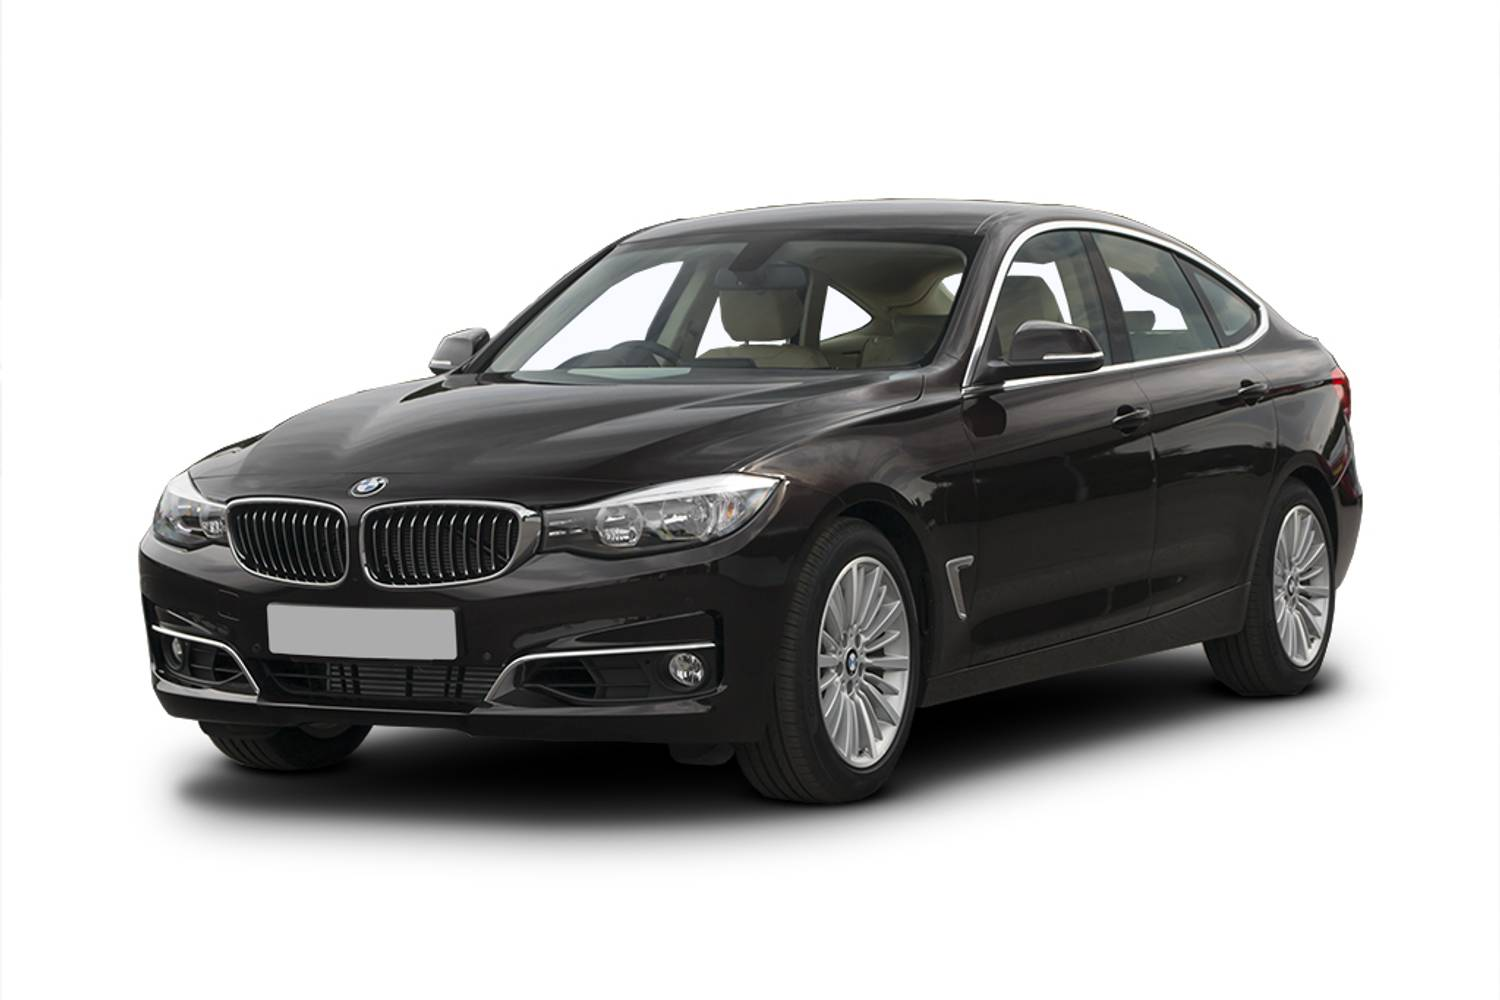 BMW 3 Series Gran Turismo Hatchback 5dr Media]